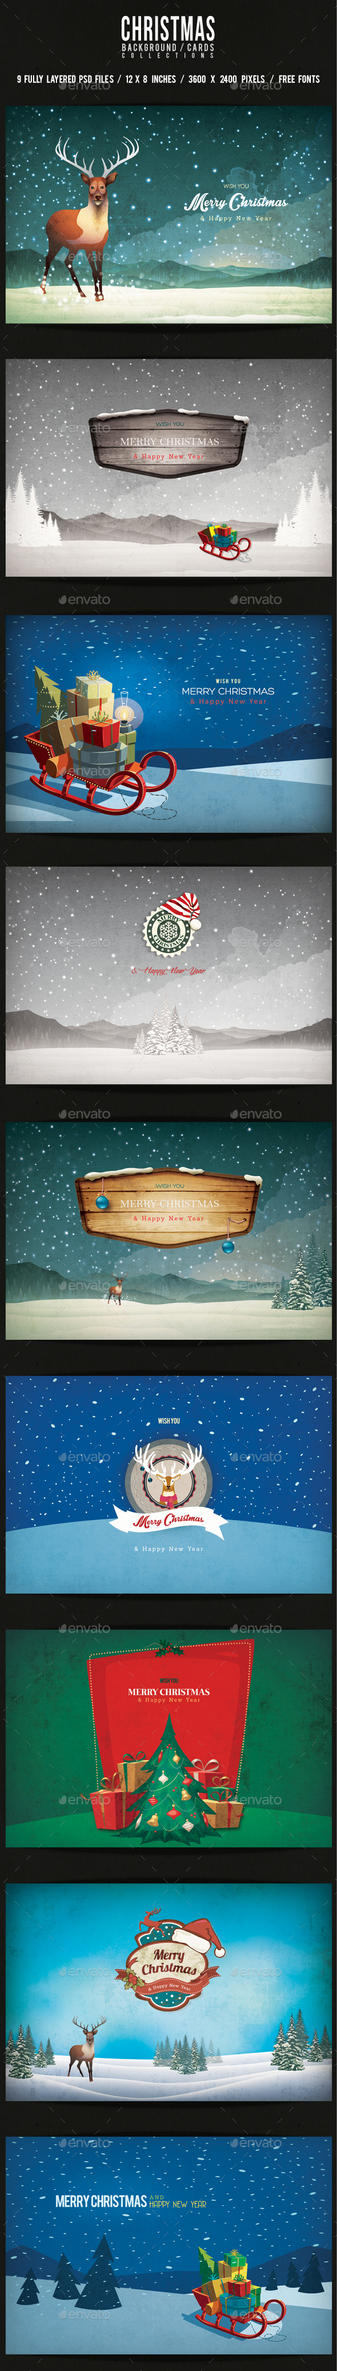 Christmas Backgrounds/Cards Collection Vol.1 by elisamaggit